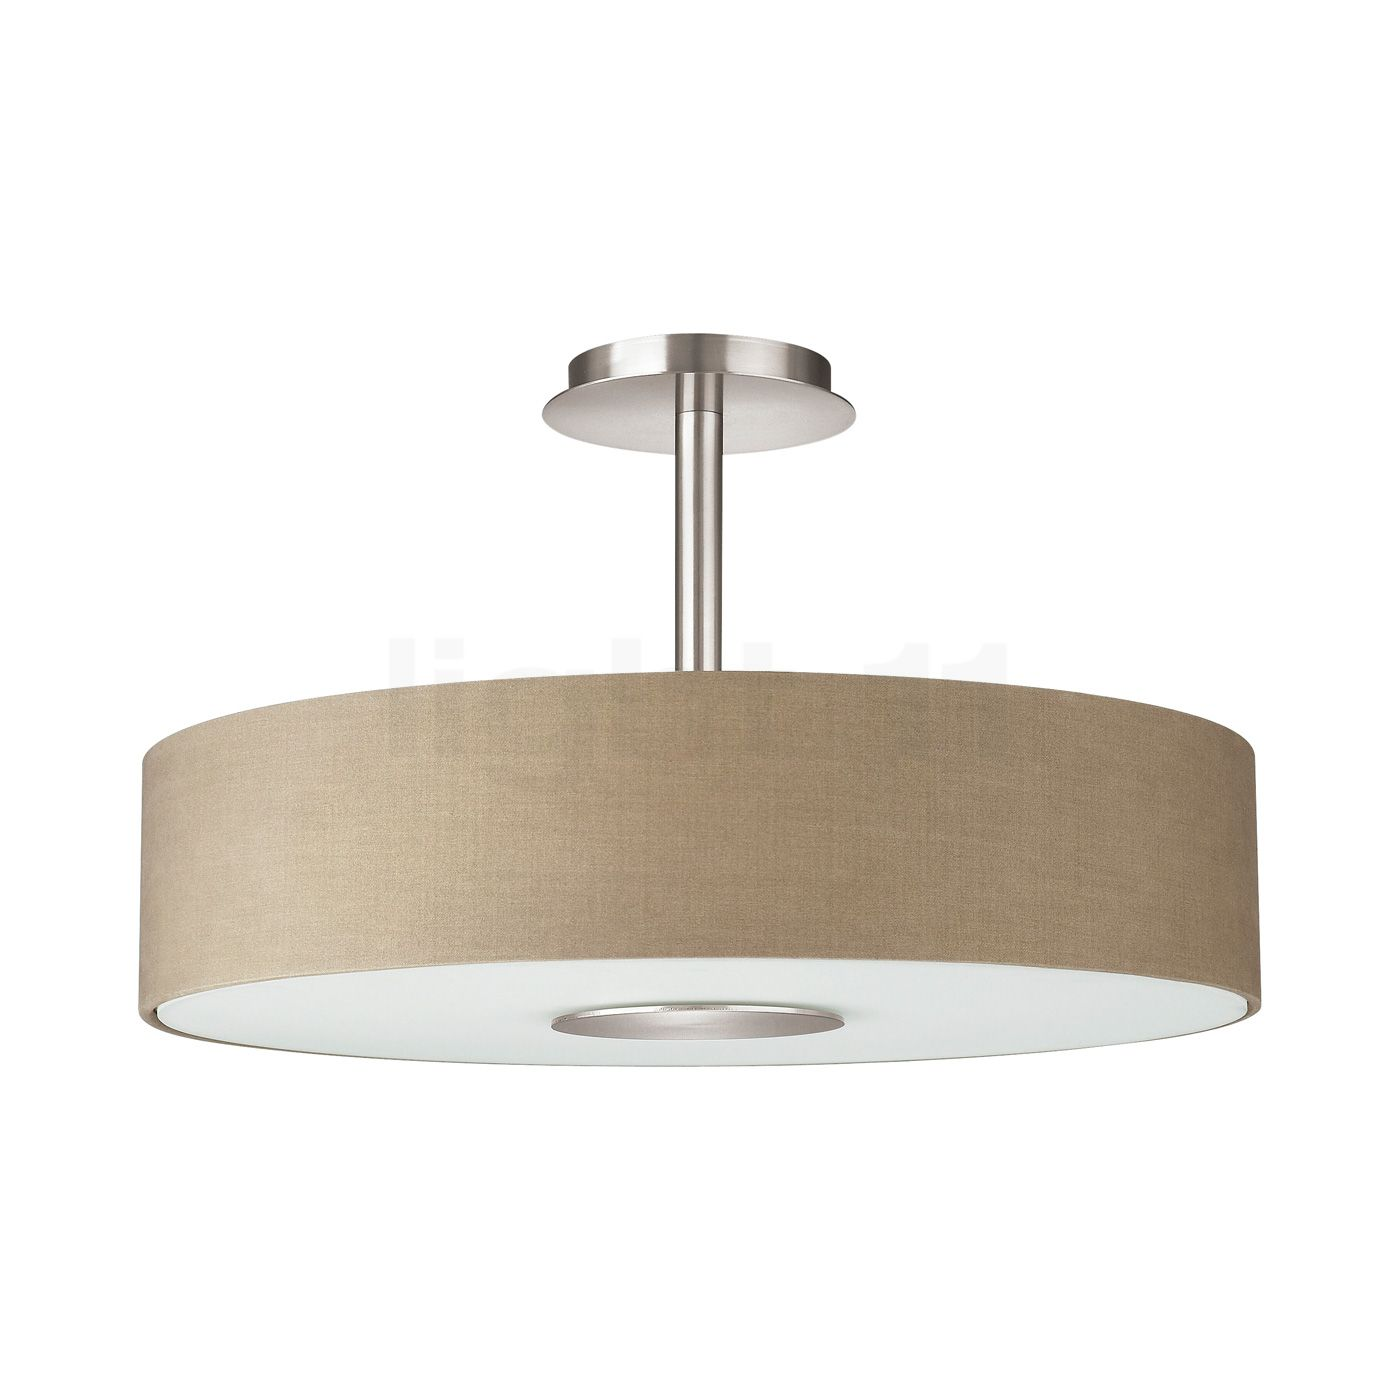 lighting for halls. Philips InStyle Flora Ceiling Light Beige Lighting For Halls J